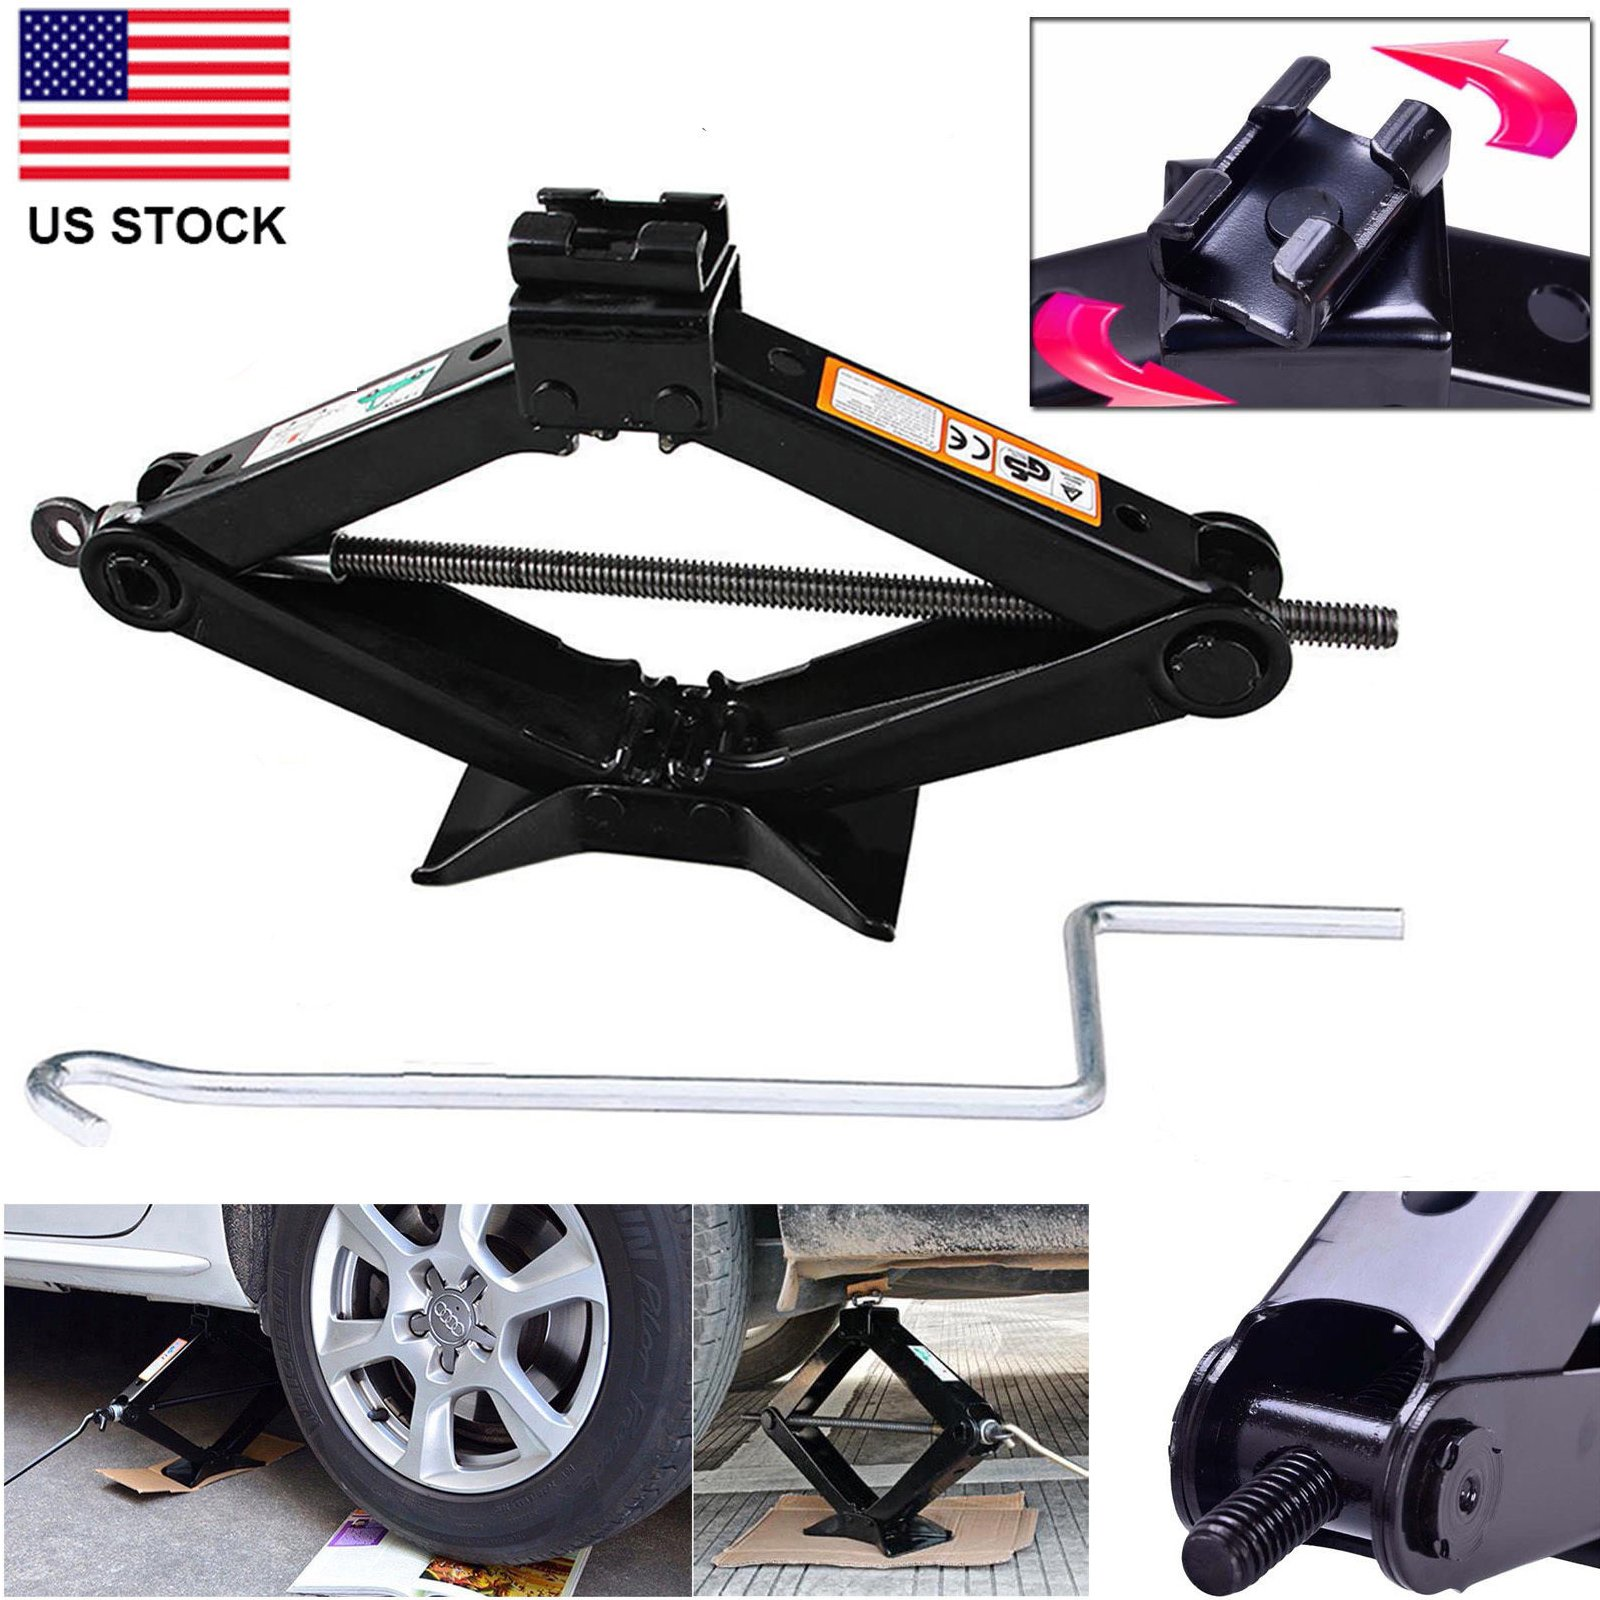 DICN 2 Ton Car Lift Scissor Jack Hand Screw Automotive Universal Spare Tire Garage Tool Emergency for Hyundai Toyota Nissan Volvo Dodge VW Kia Chrysler